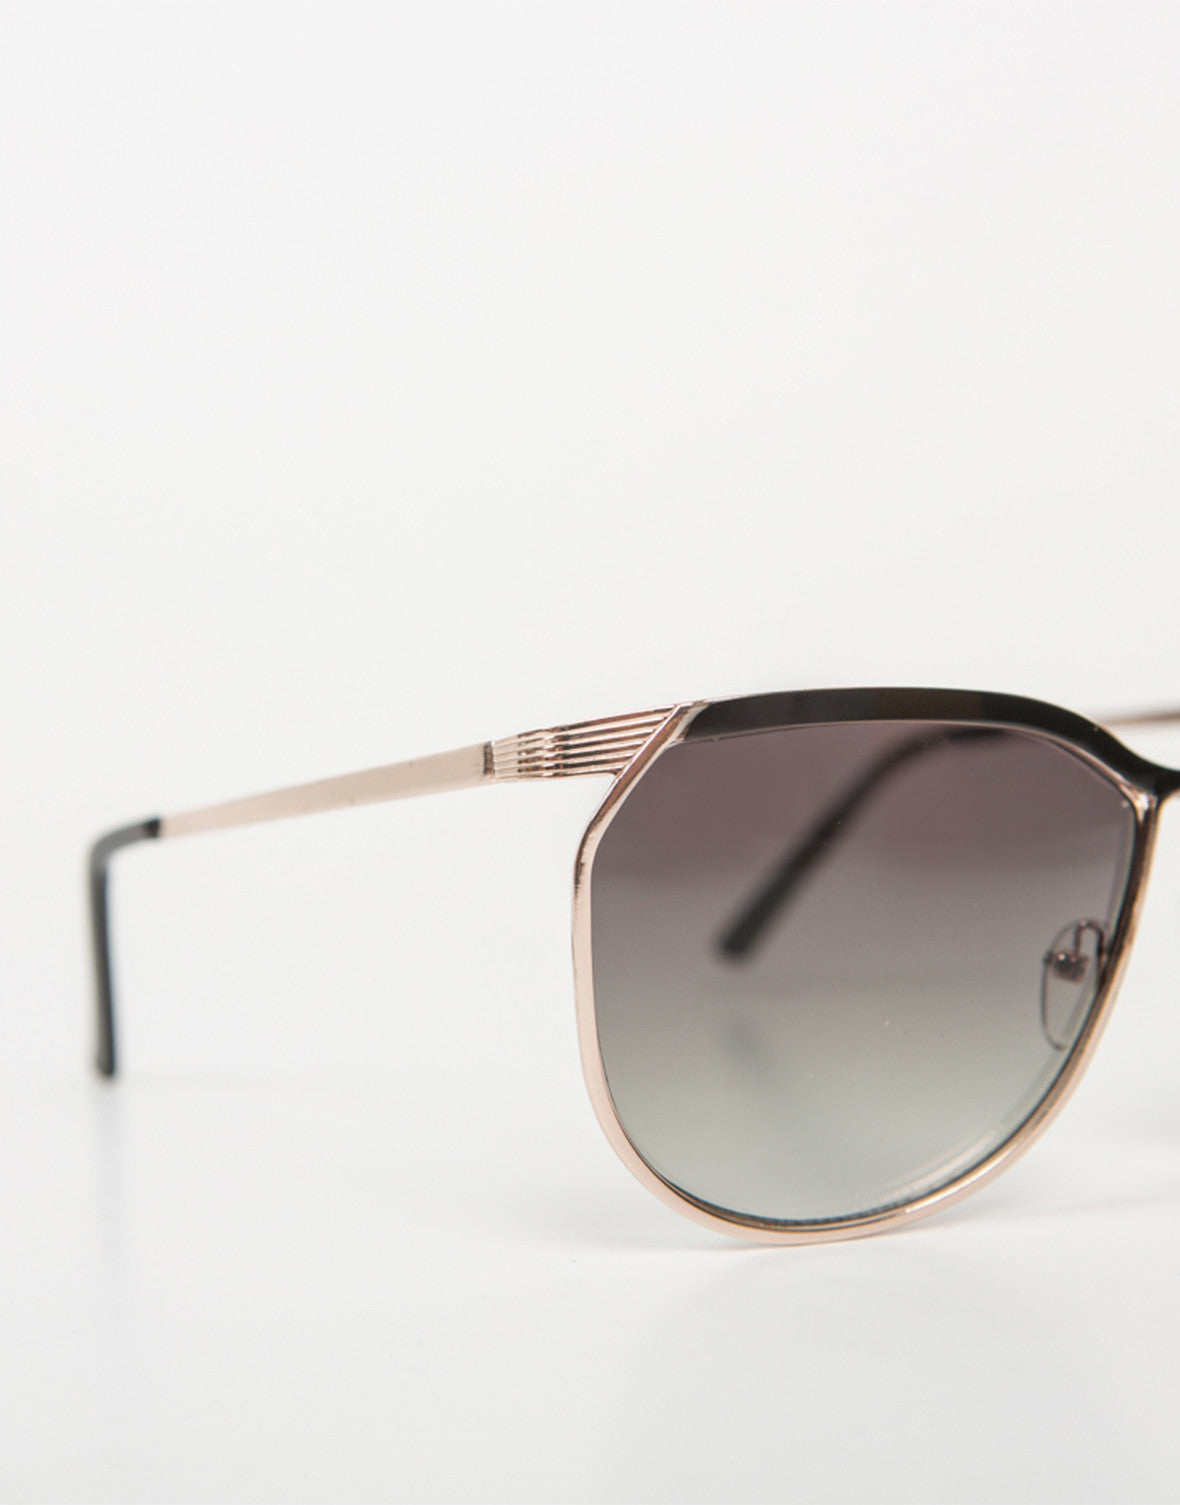 Detail of Oversized Vintage Pilot Sunnies